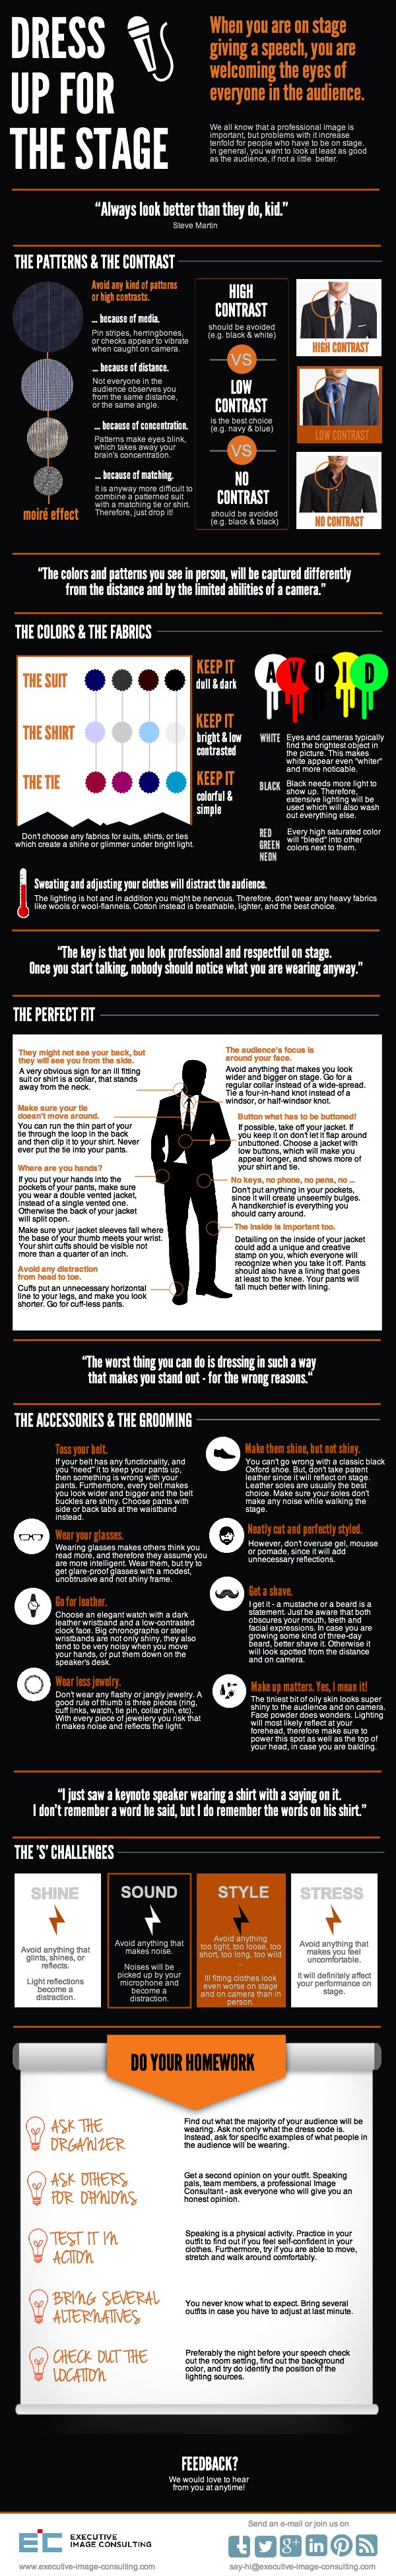 "Is it important what you wear while speaking on a stage? ABSOLUTELY! This #infographic gives practicable hands-on advice, especially for male keynote speakers who want to rock the stage in a professional manner. ""What to wear as a Professional Speaker"", designed by Executive Image Consulting, www.executive-image-consulting.com, New York, #professionalspeaker #professionalimage #executiveimageconsulting #imageconsulting #publicspeaking"